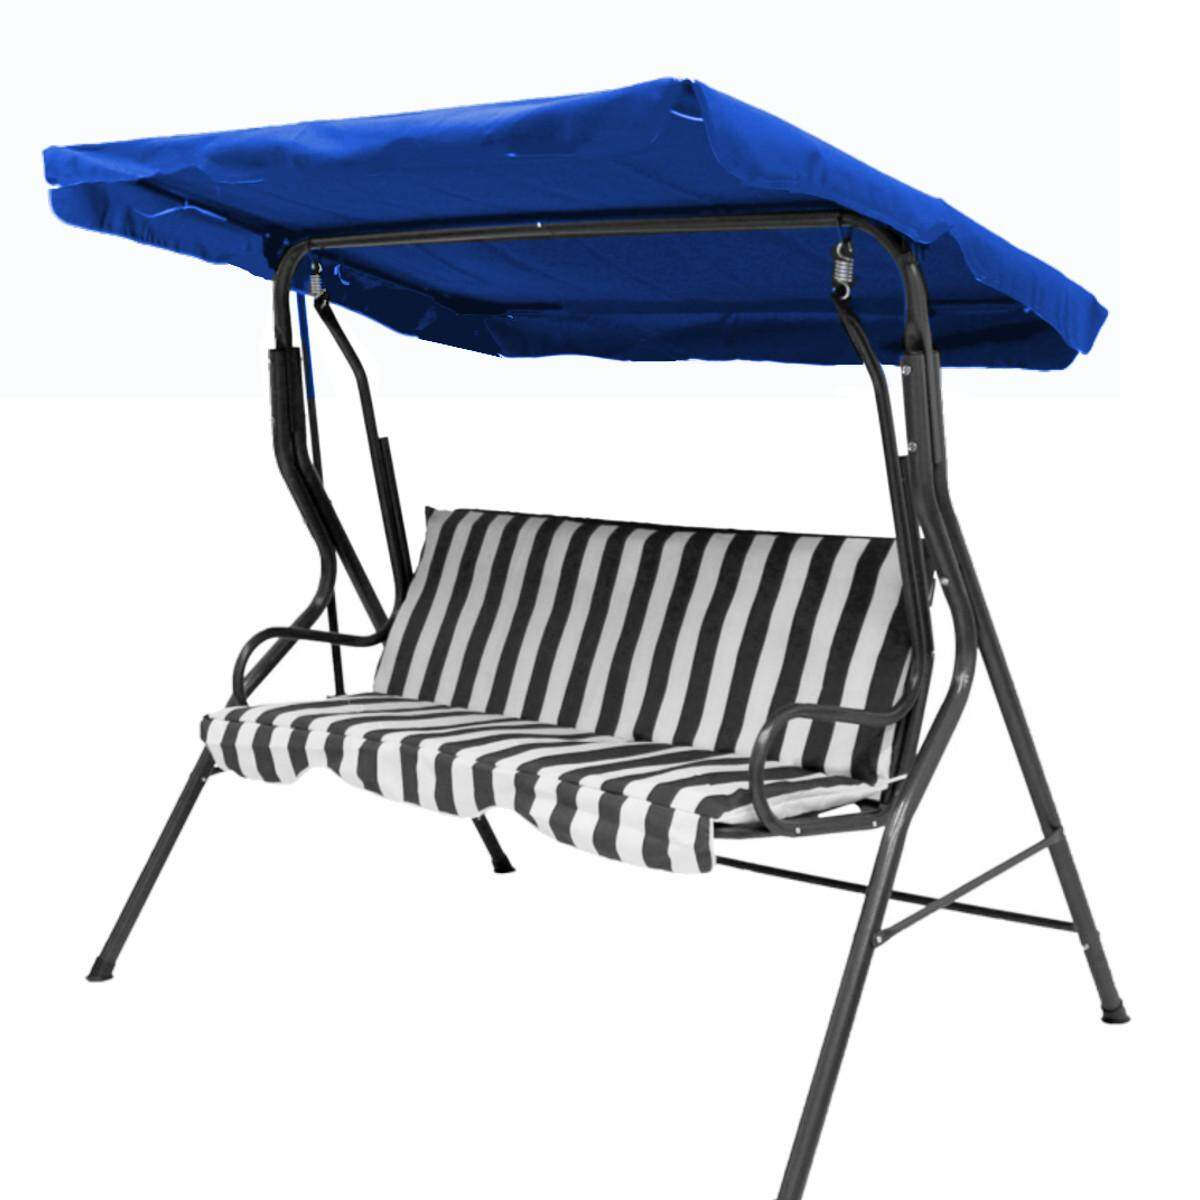 Replacement Canopy For Swing Seat Garden Hammock 3 Seater Sizes Spare Cover By Vividly.